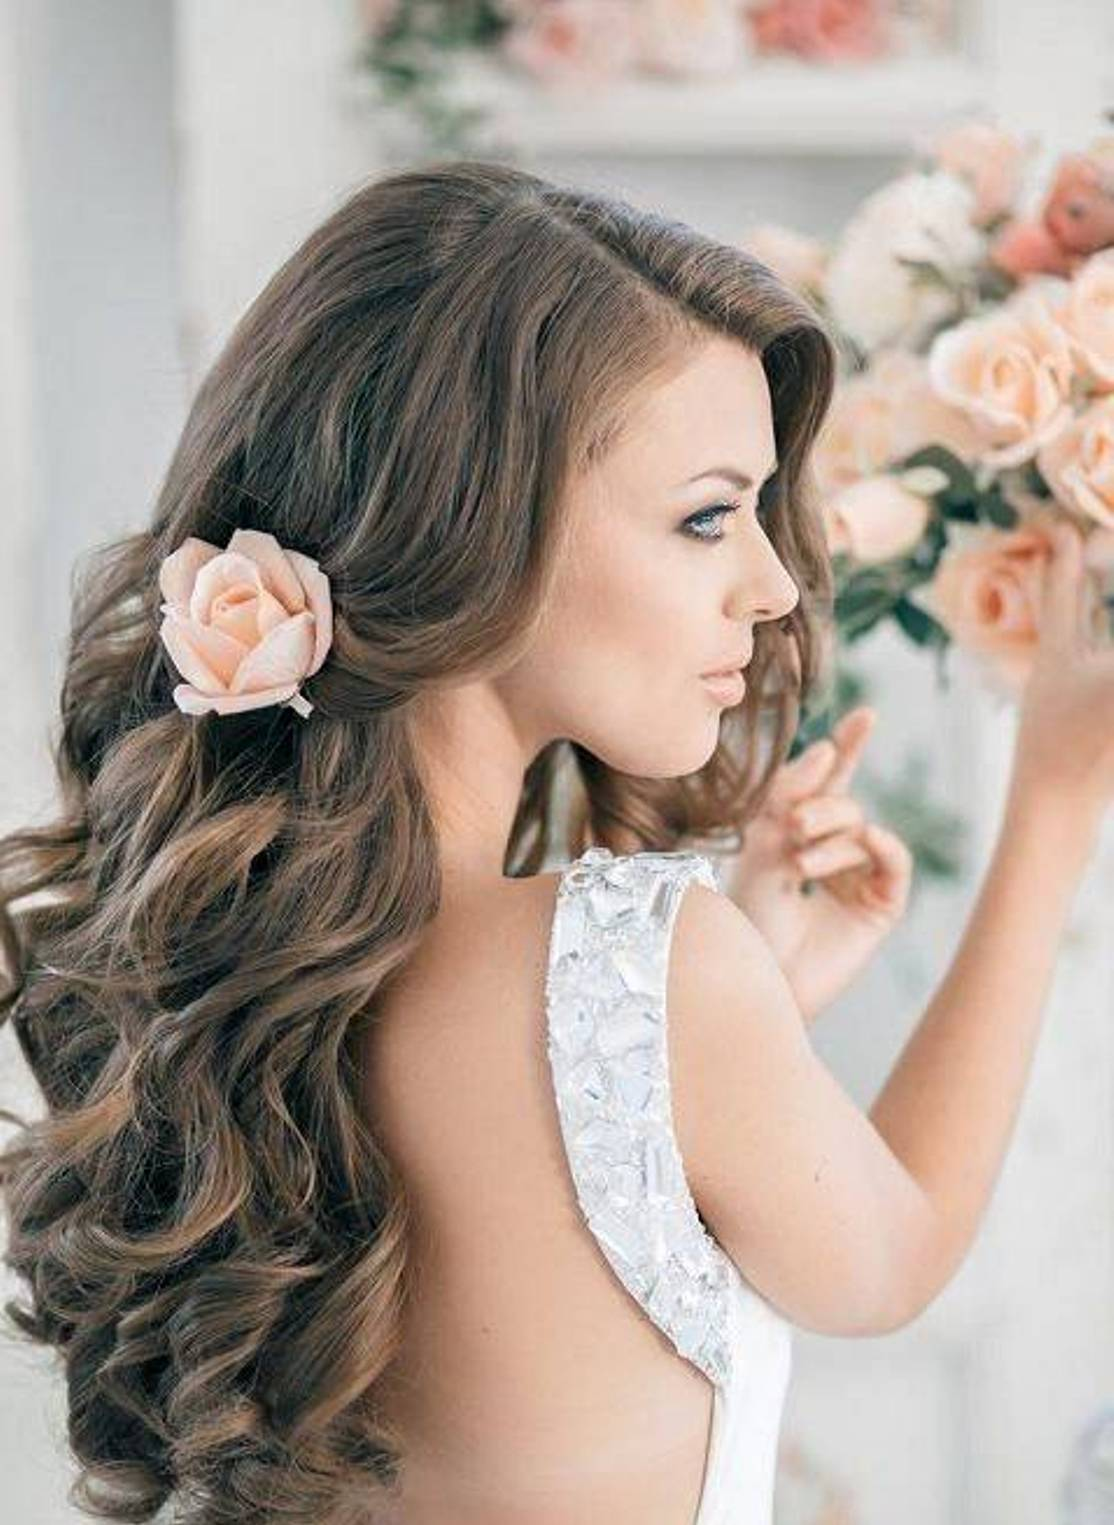 Latest Hair Do : 35 Latest And Beautiful Hairstyles For Long Hair